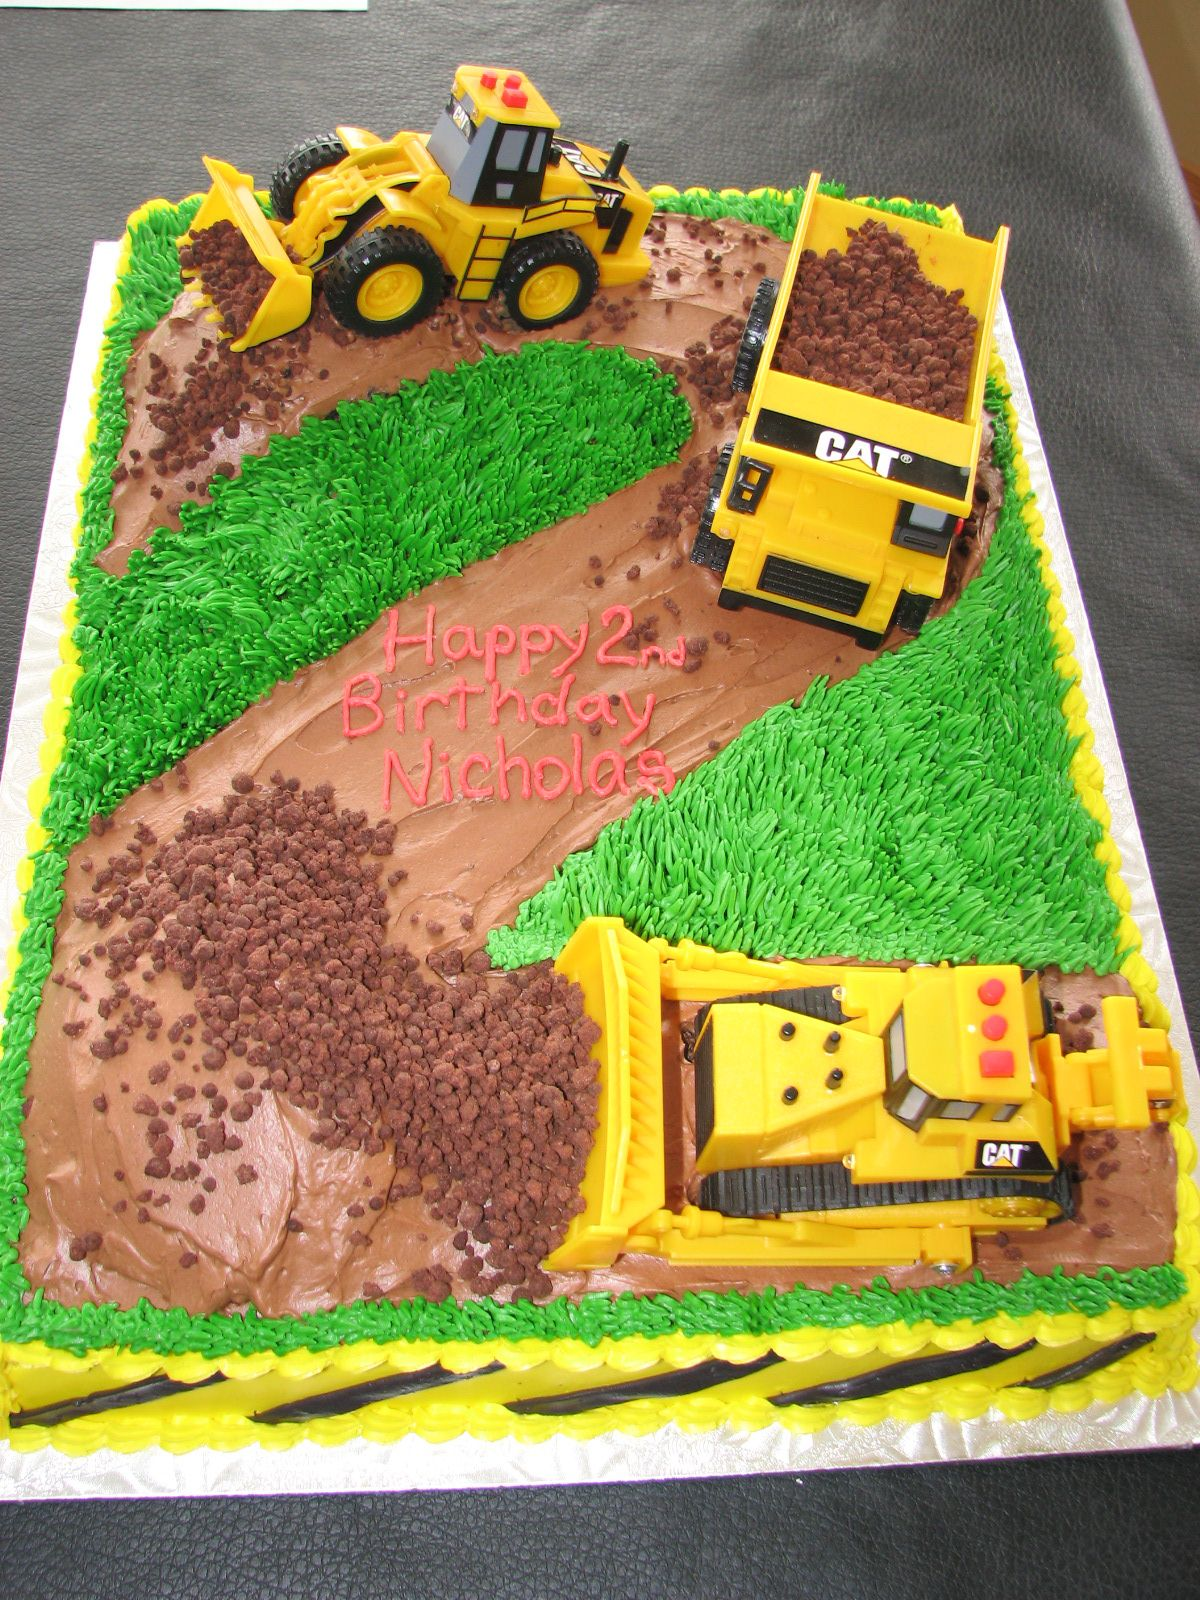 Cute idea for a John Deere party too just need some green tractors